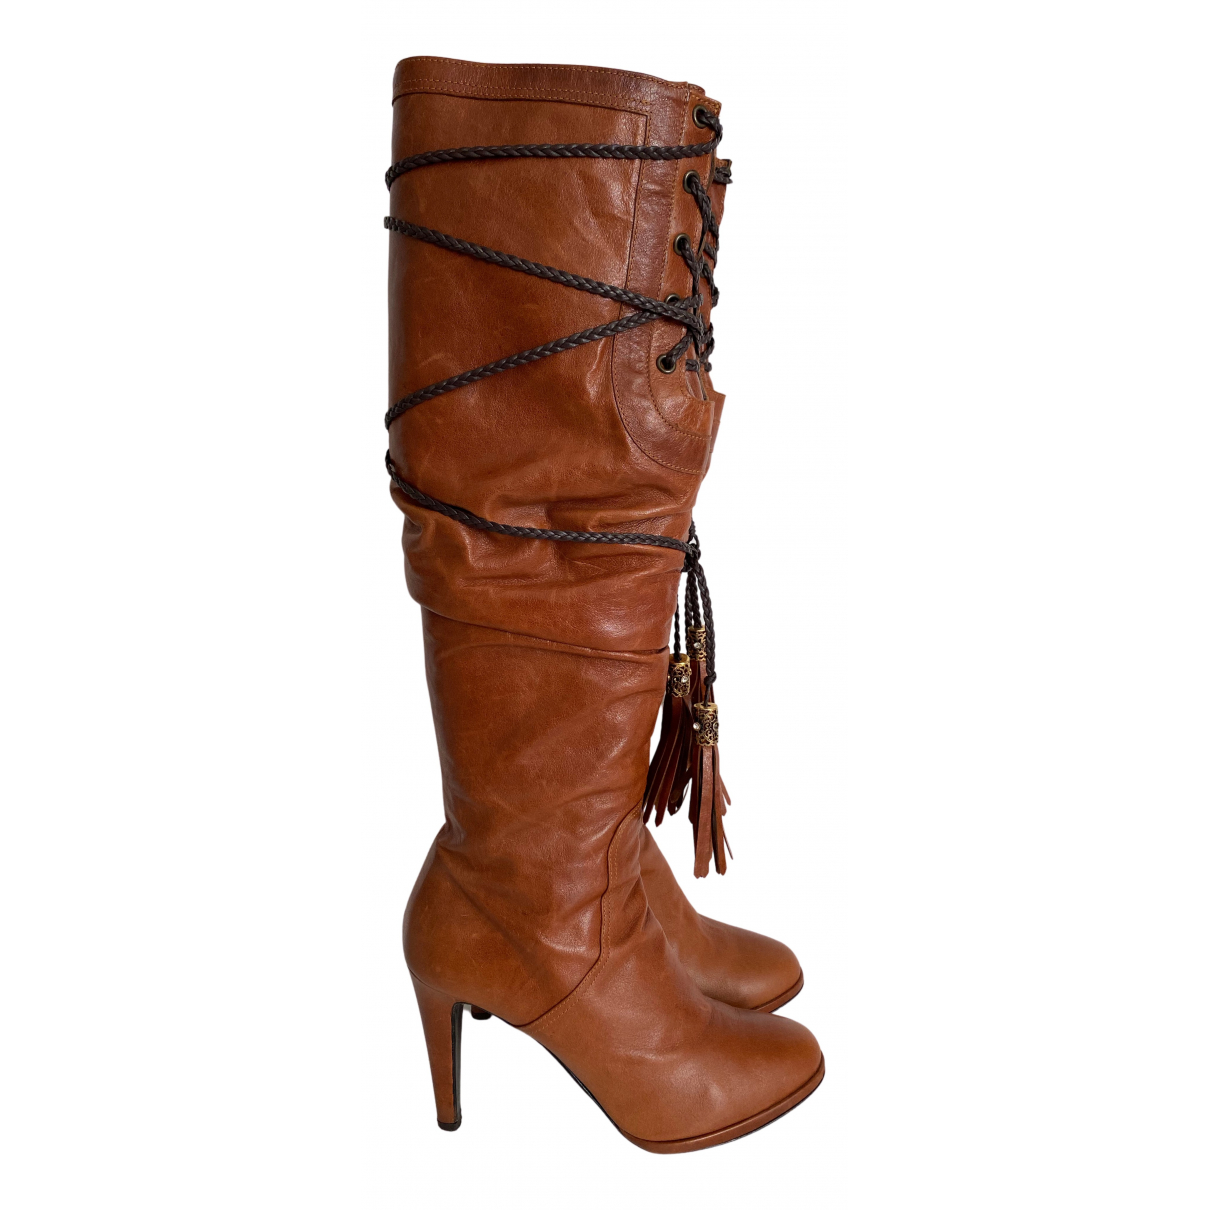 Le Silla N Brown Leather Boots for Women 38 EU